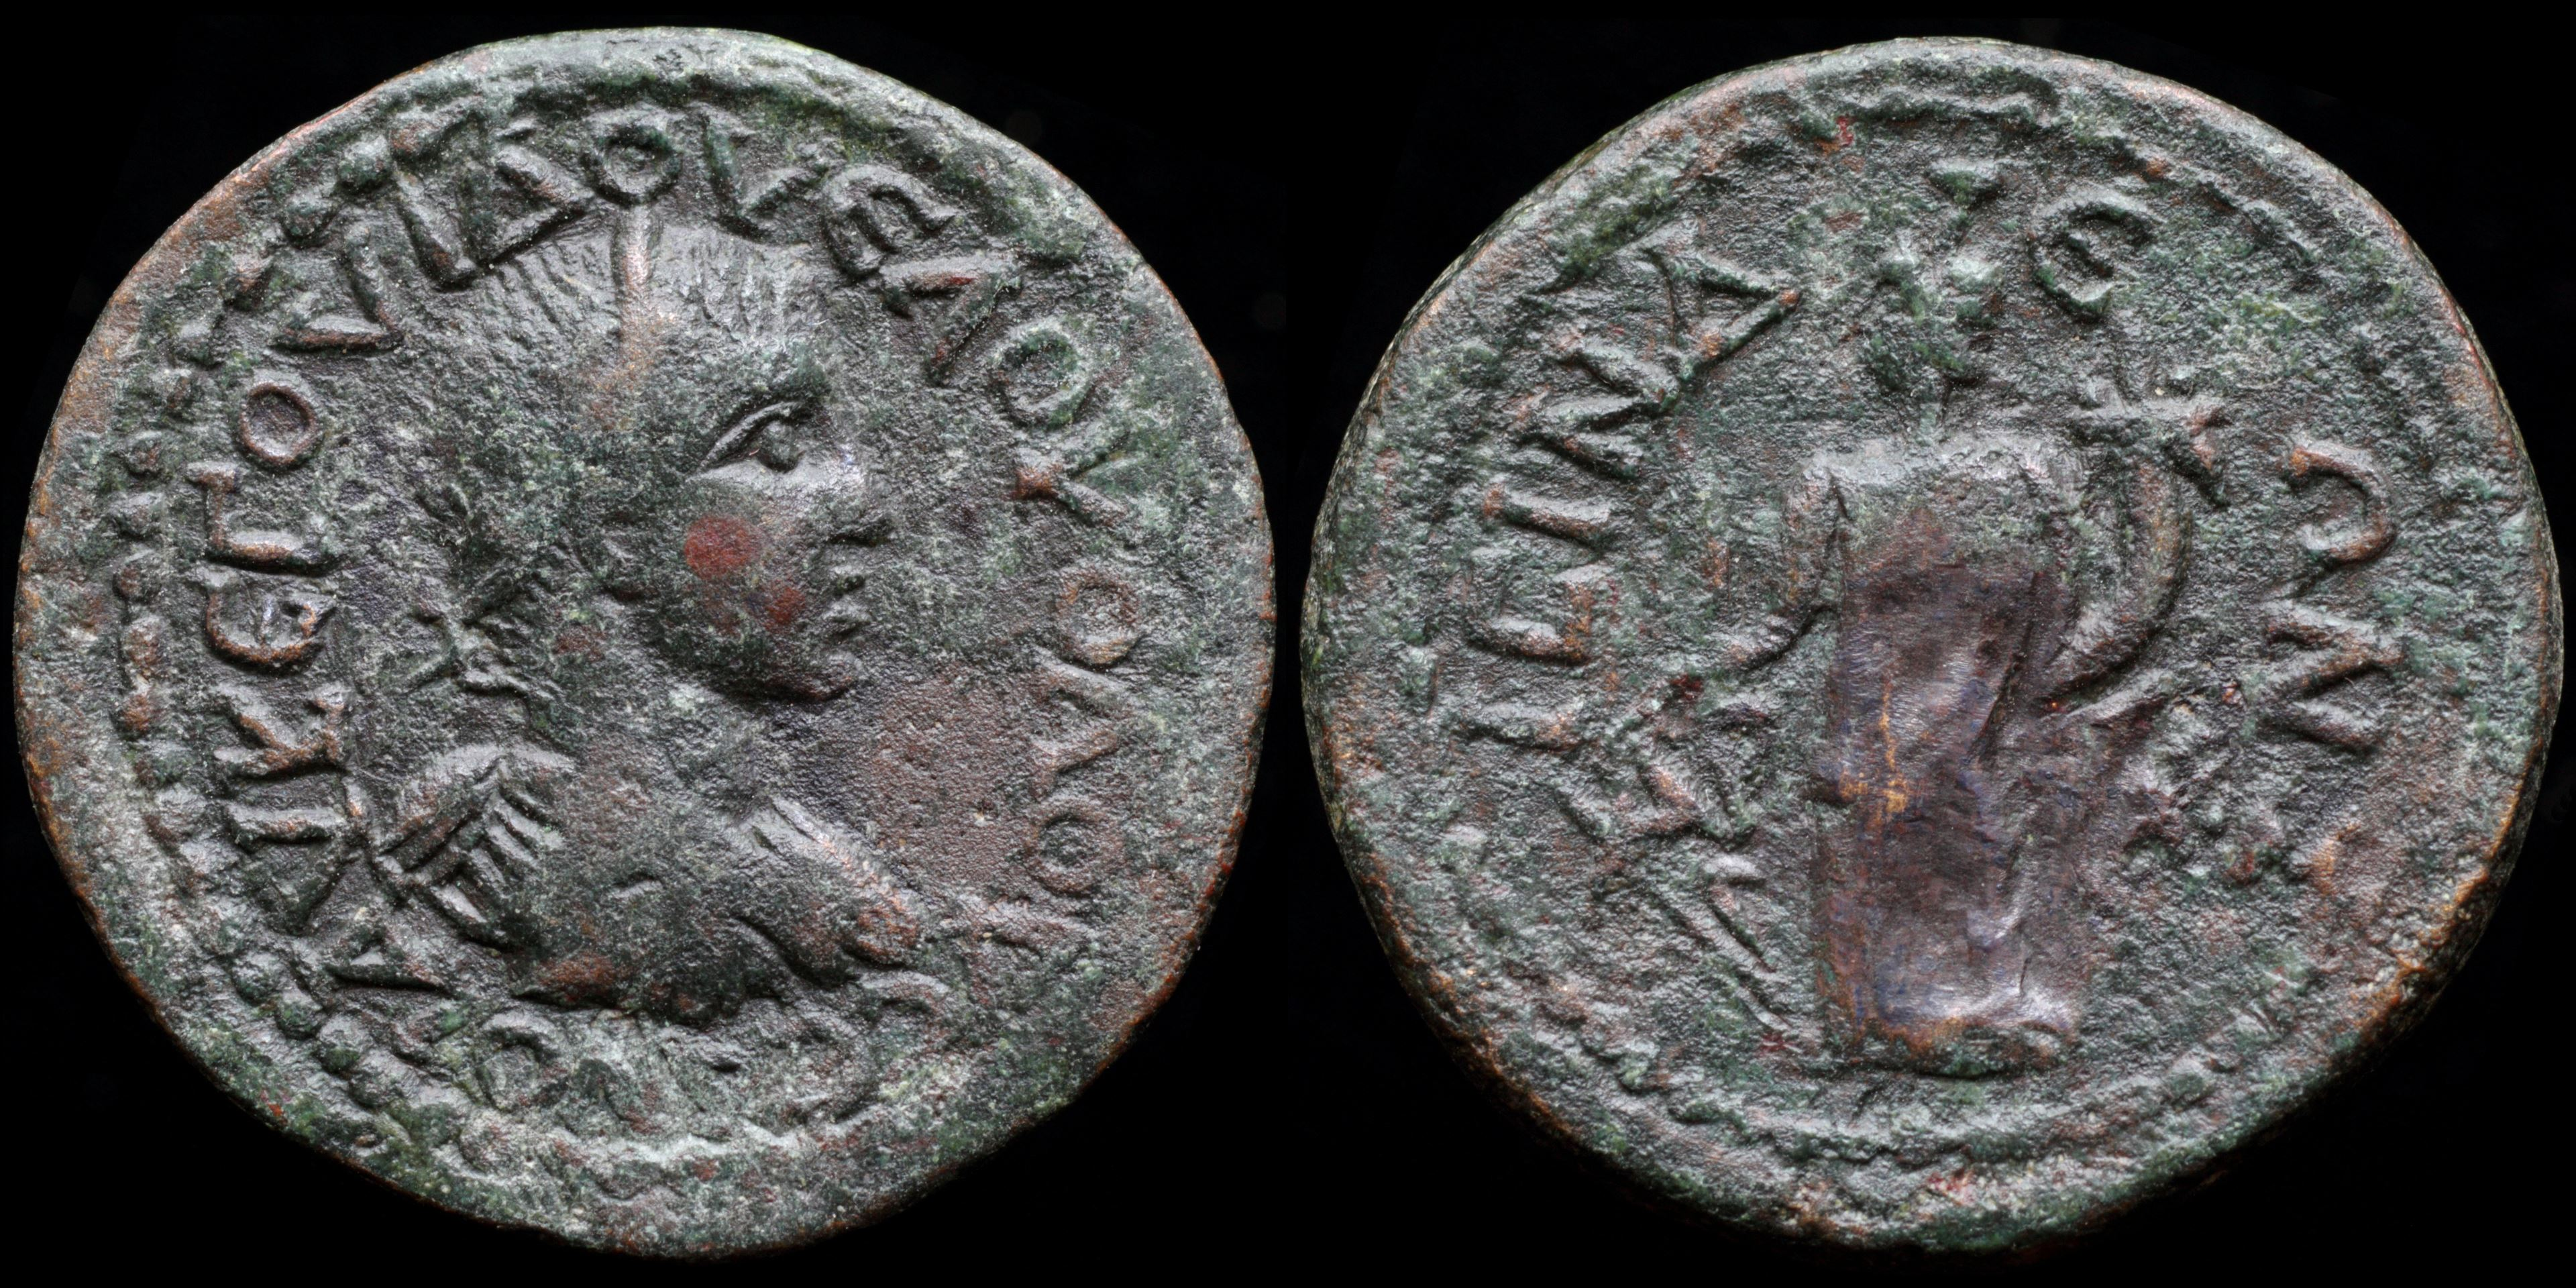 /Files/Images/Coinsite/CoinDB/Volusianus_Isinda.jpg